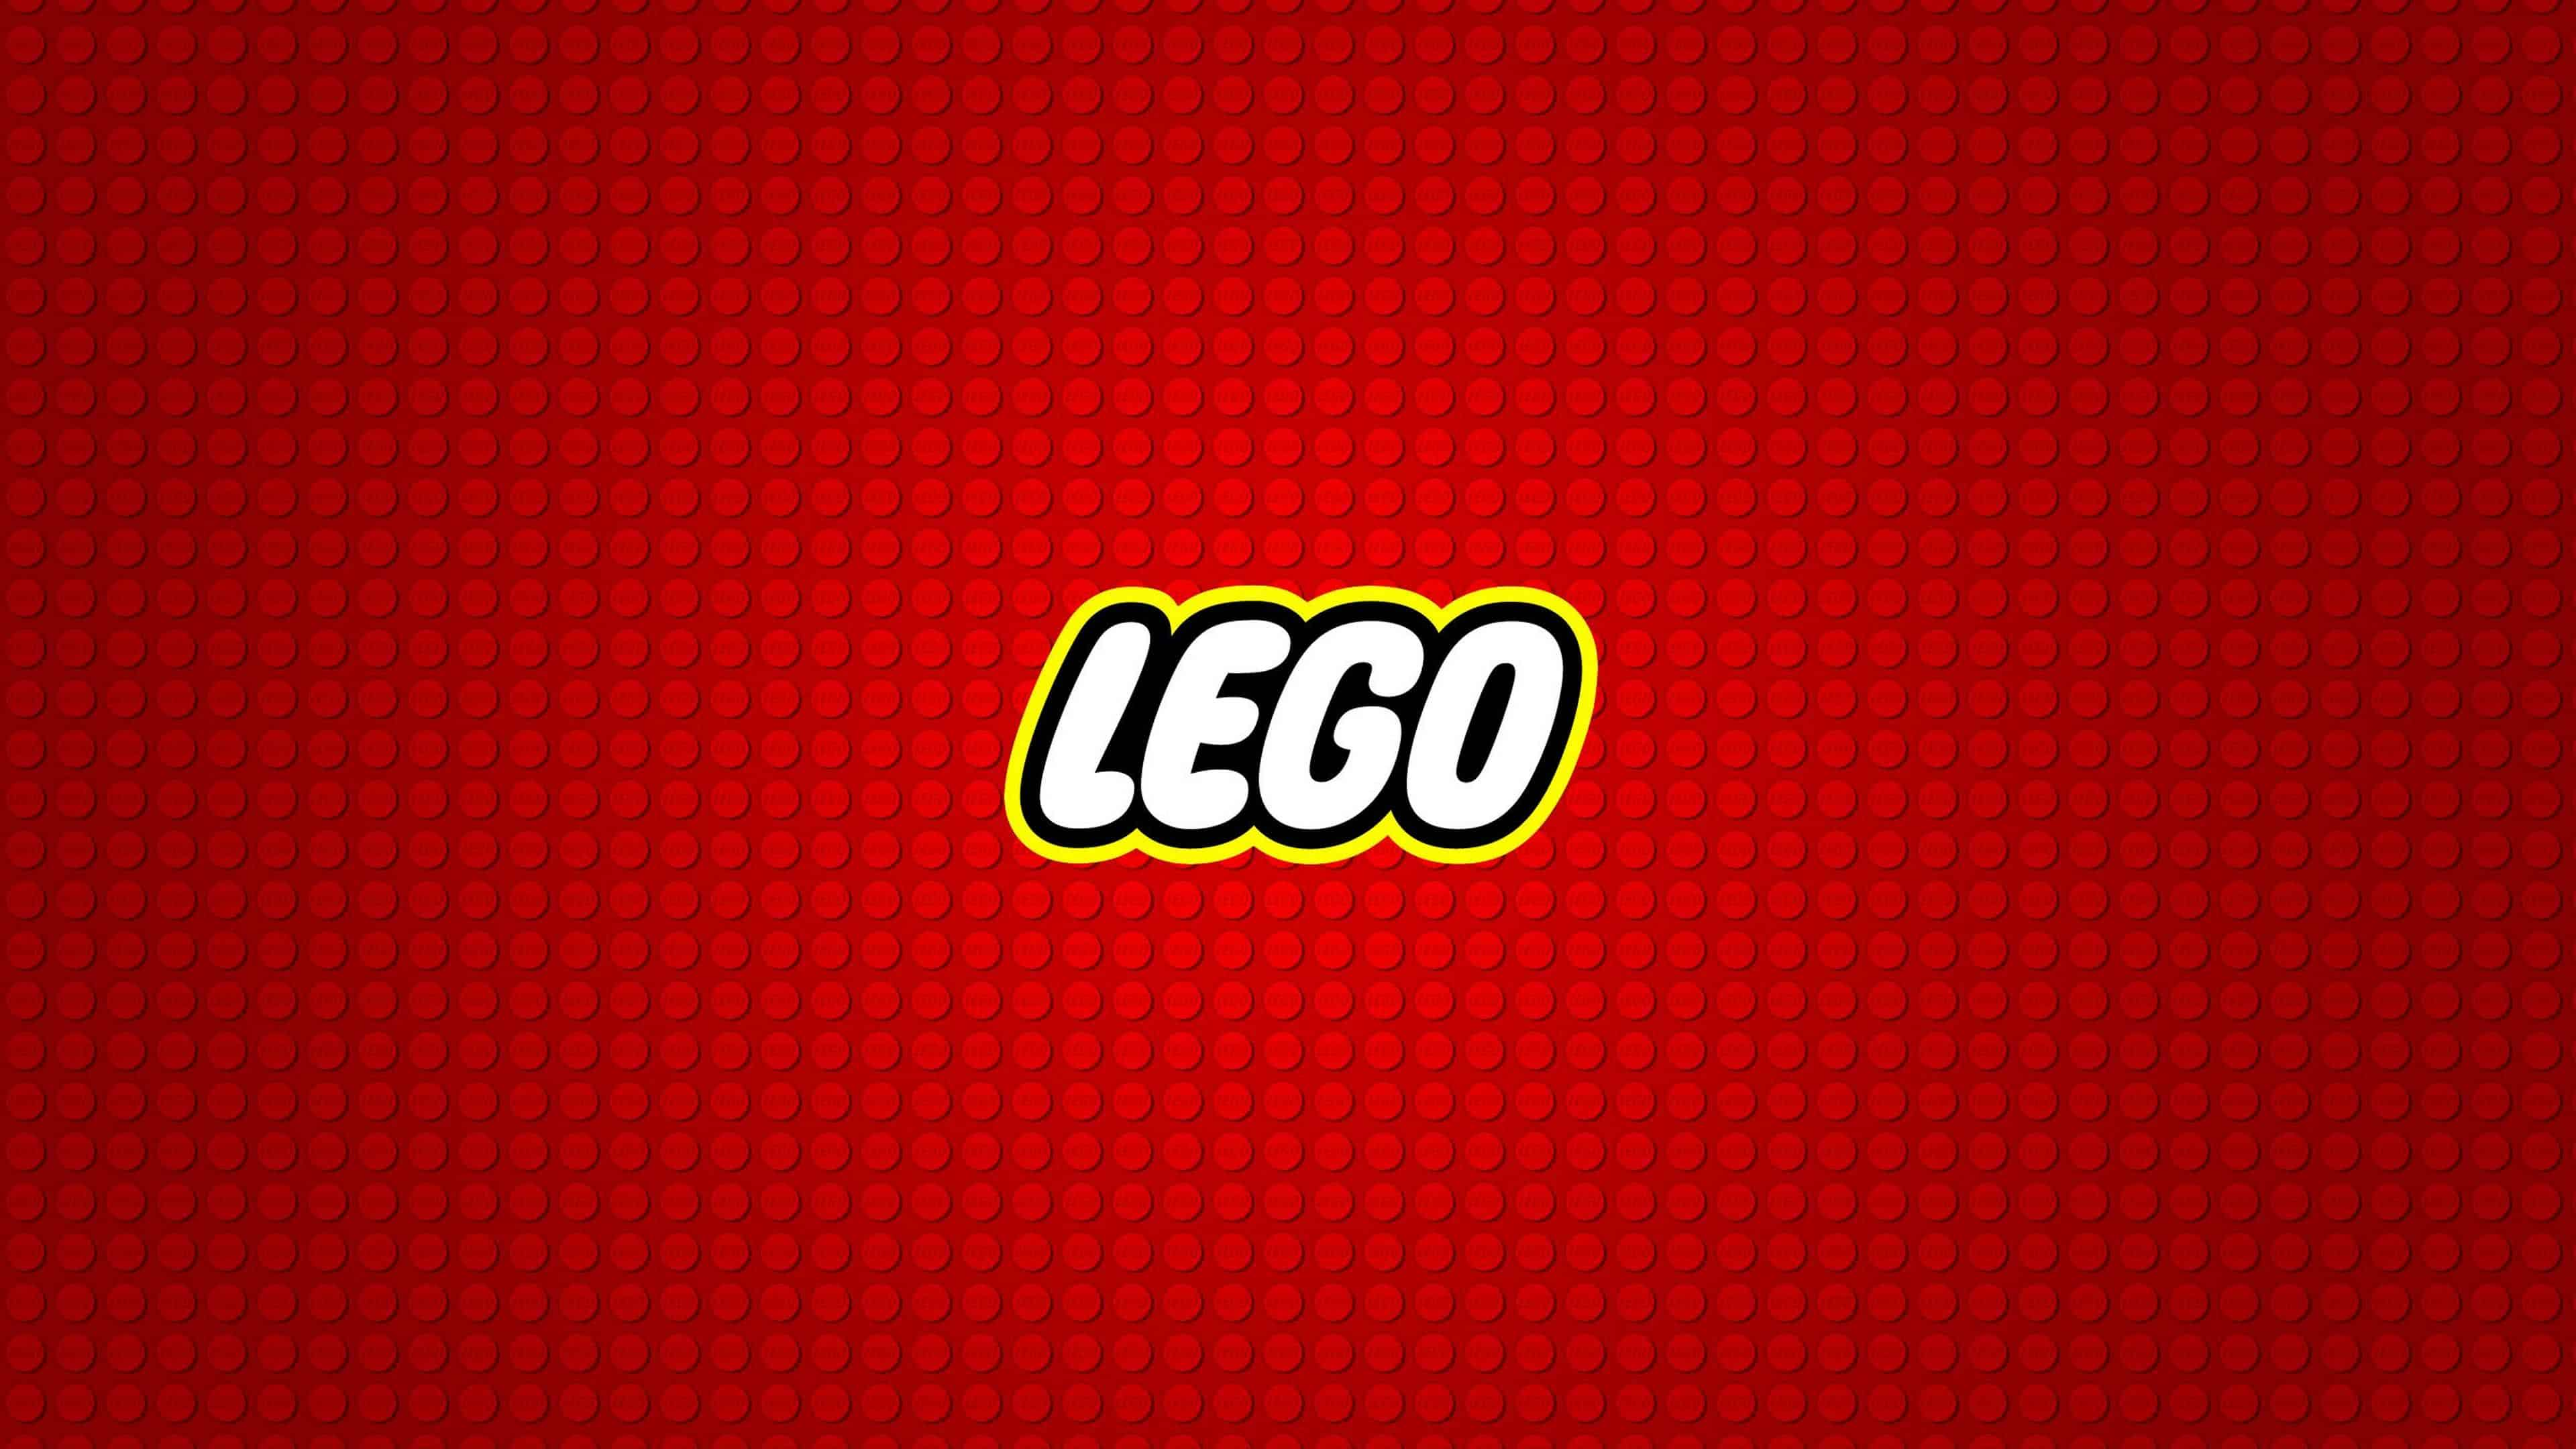 Ultra Hd Wallpapers Iphone X Lego Logo Red Background Uhd 4k Wallpaper Pixelz